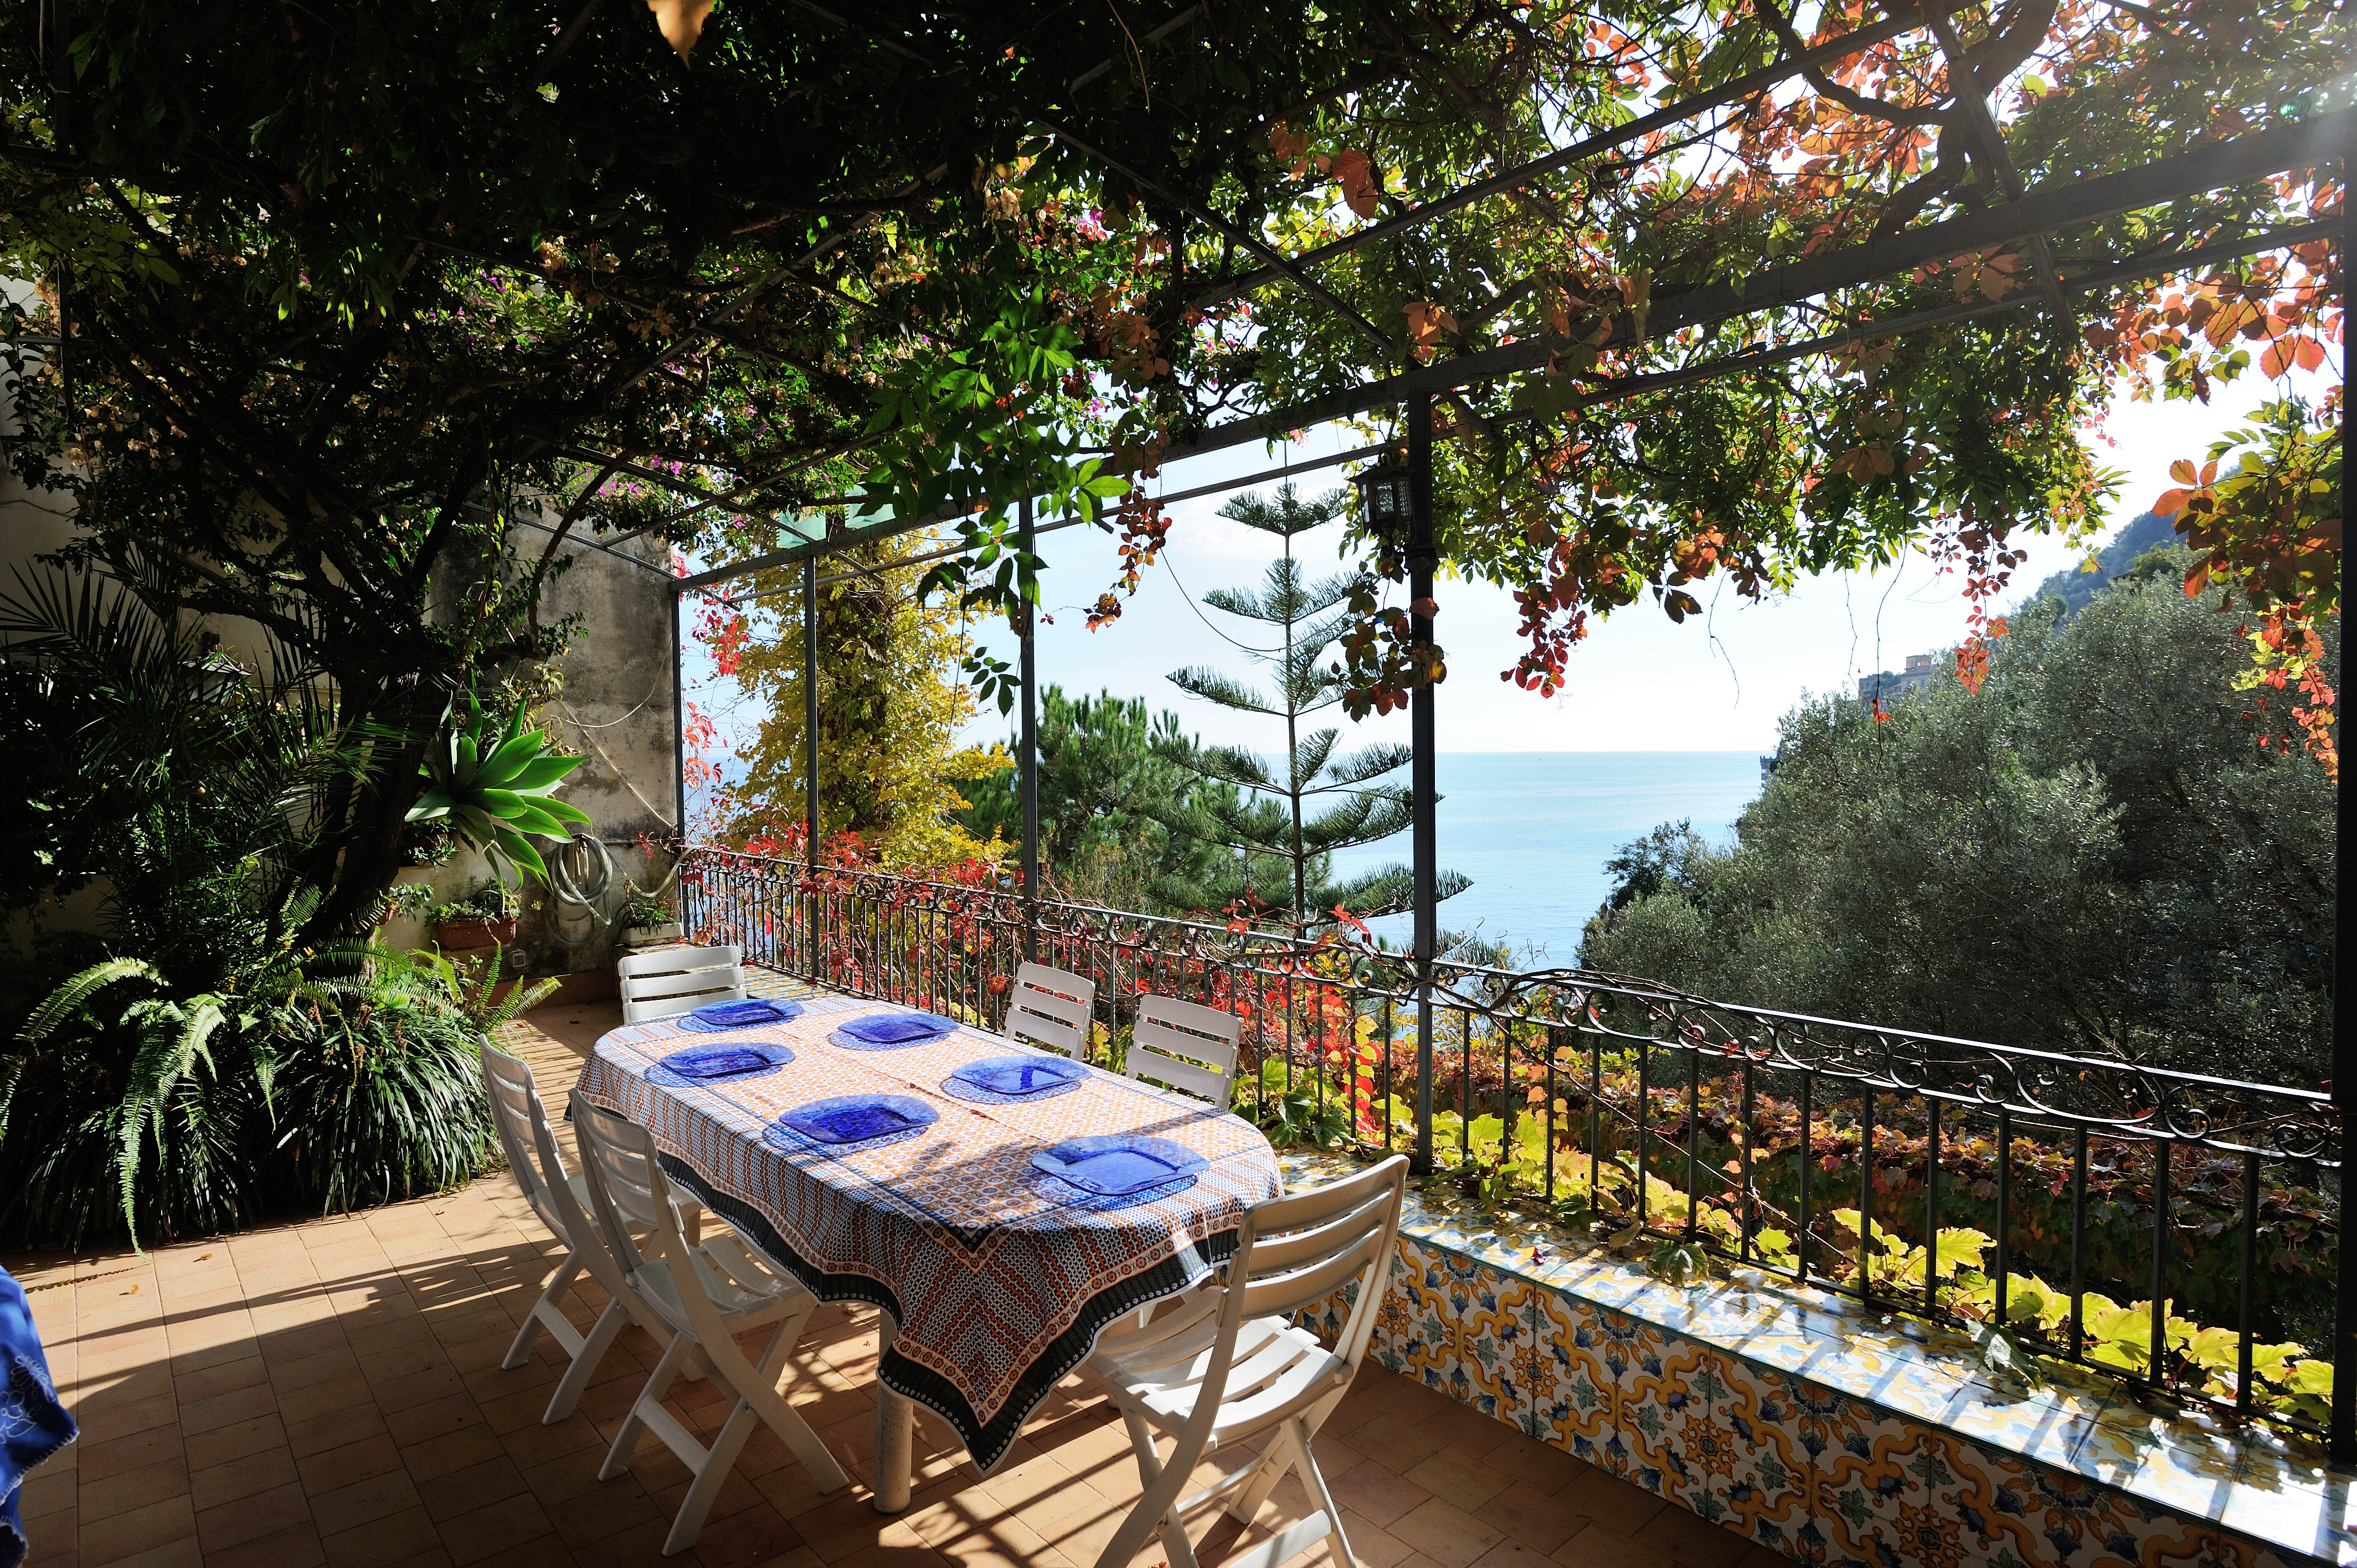 Casa Le Terrazze in Ravello - Italian Breaks